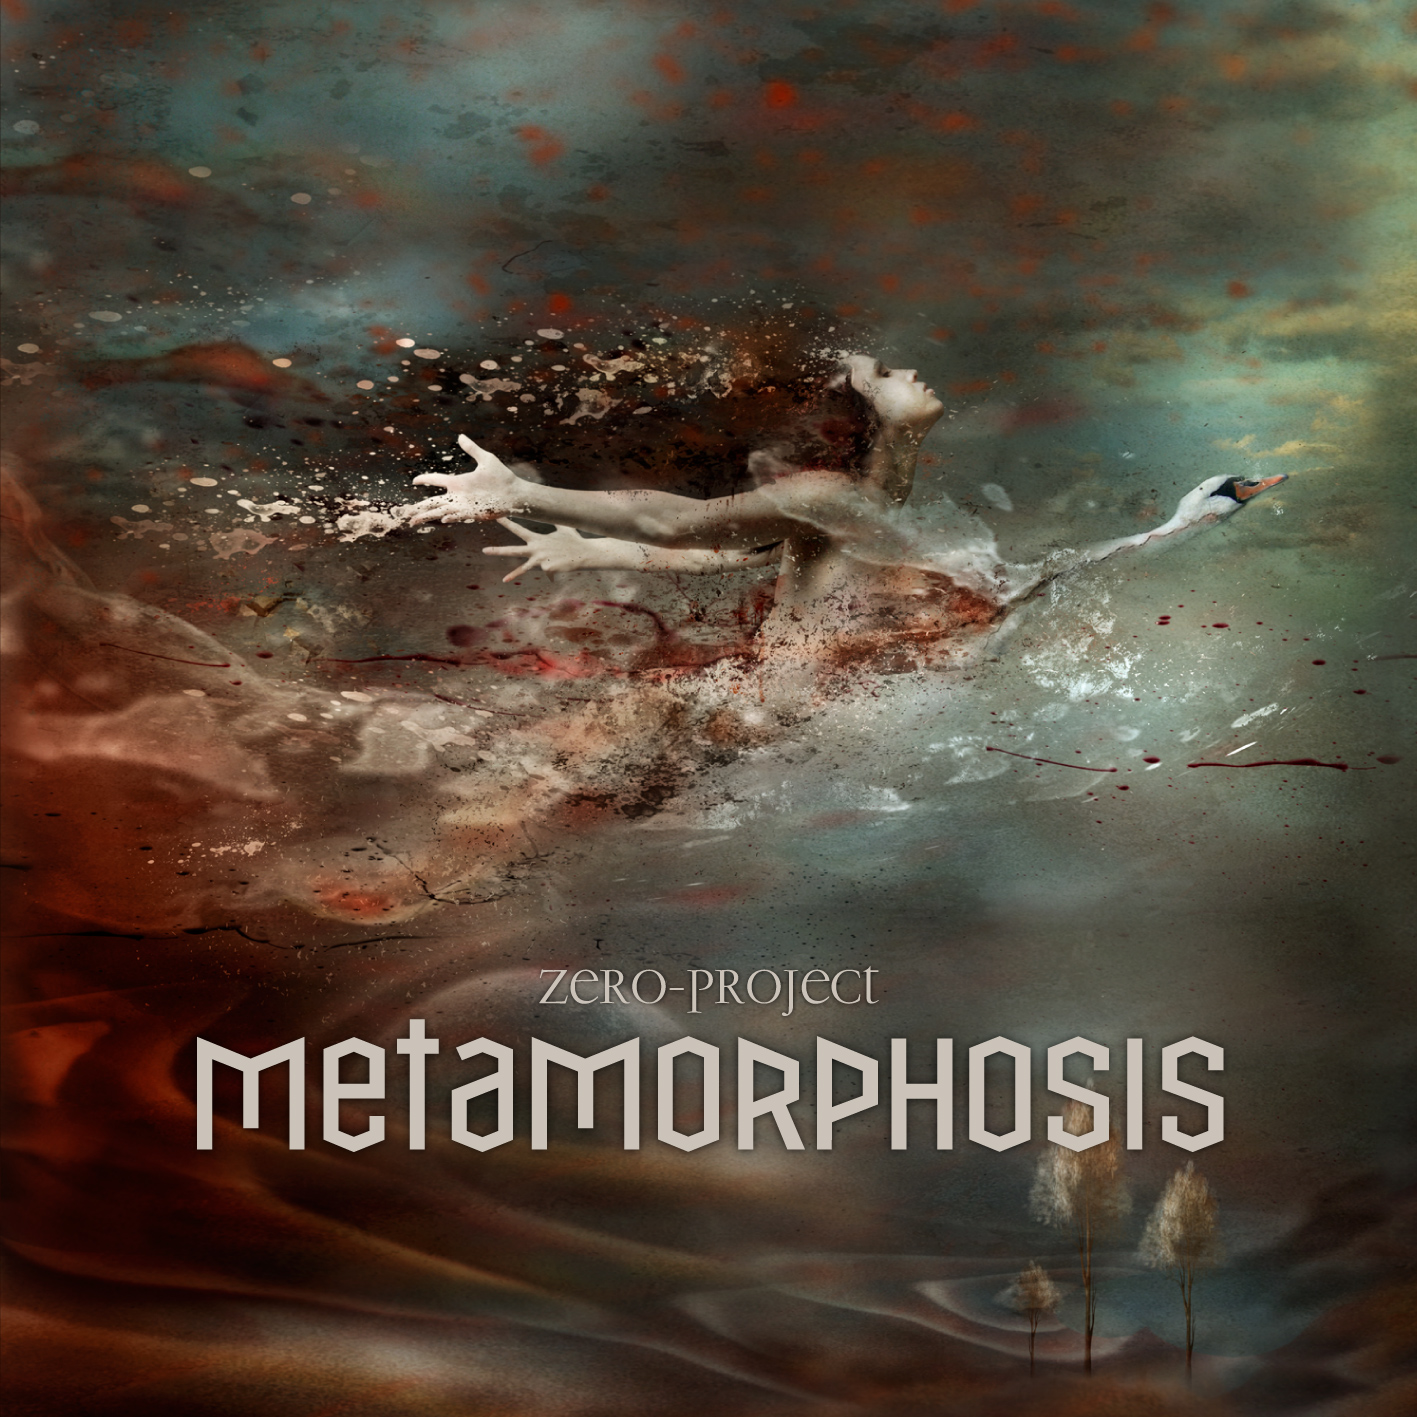 franz kafka the metamorphosis critical essays Reflective paper about the metamorphosis by franz kafka introduction the metamorphosis is mainly about a salesman named gregor samsa, who wakes up one morning turned into a beetle, but not really know what happened to him.